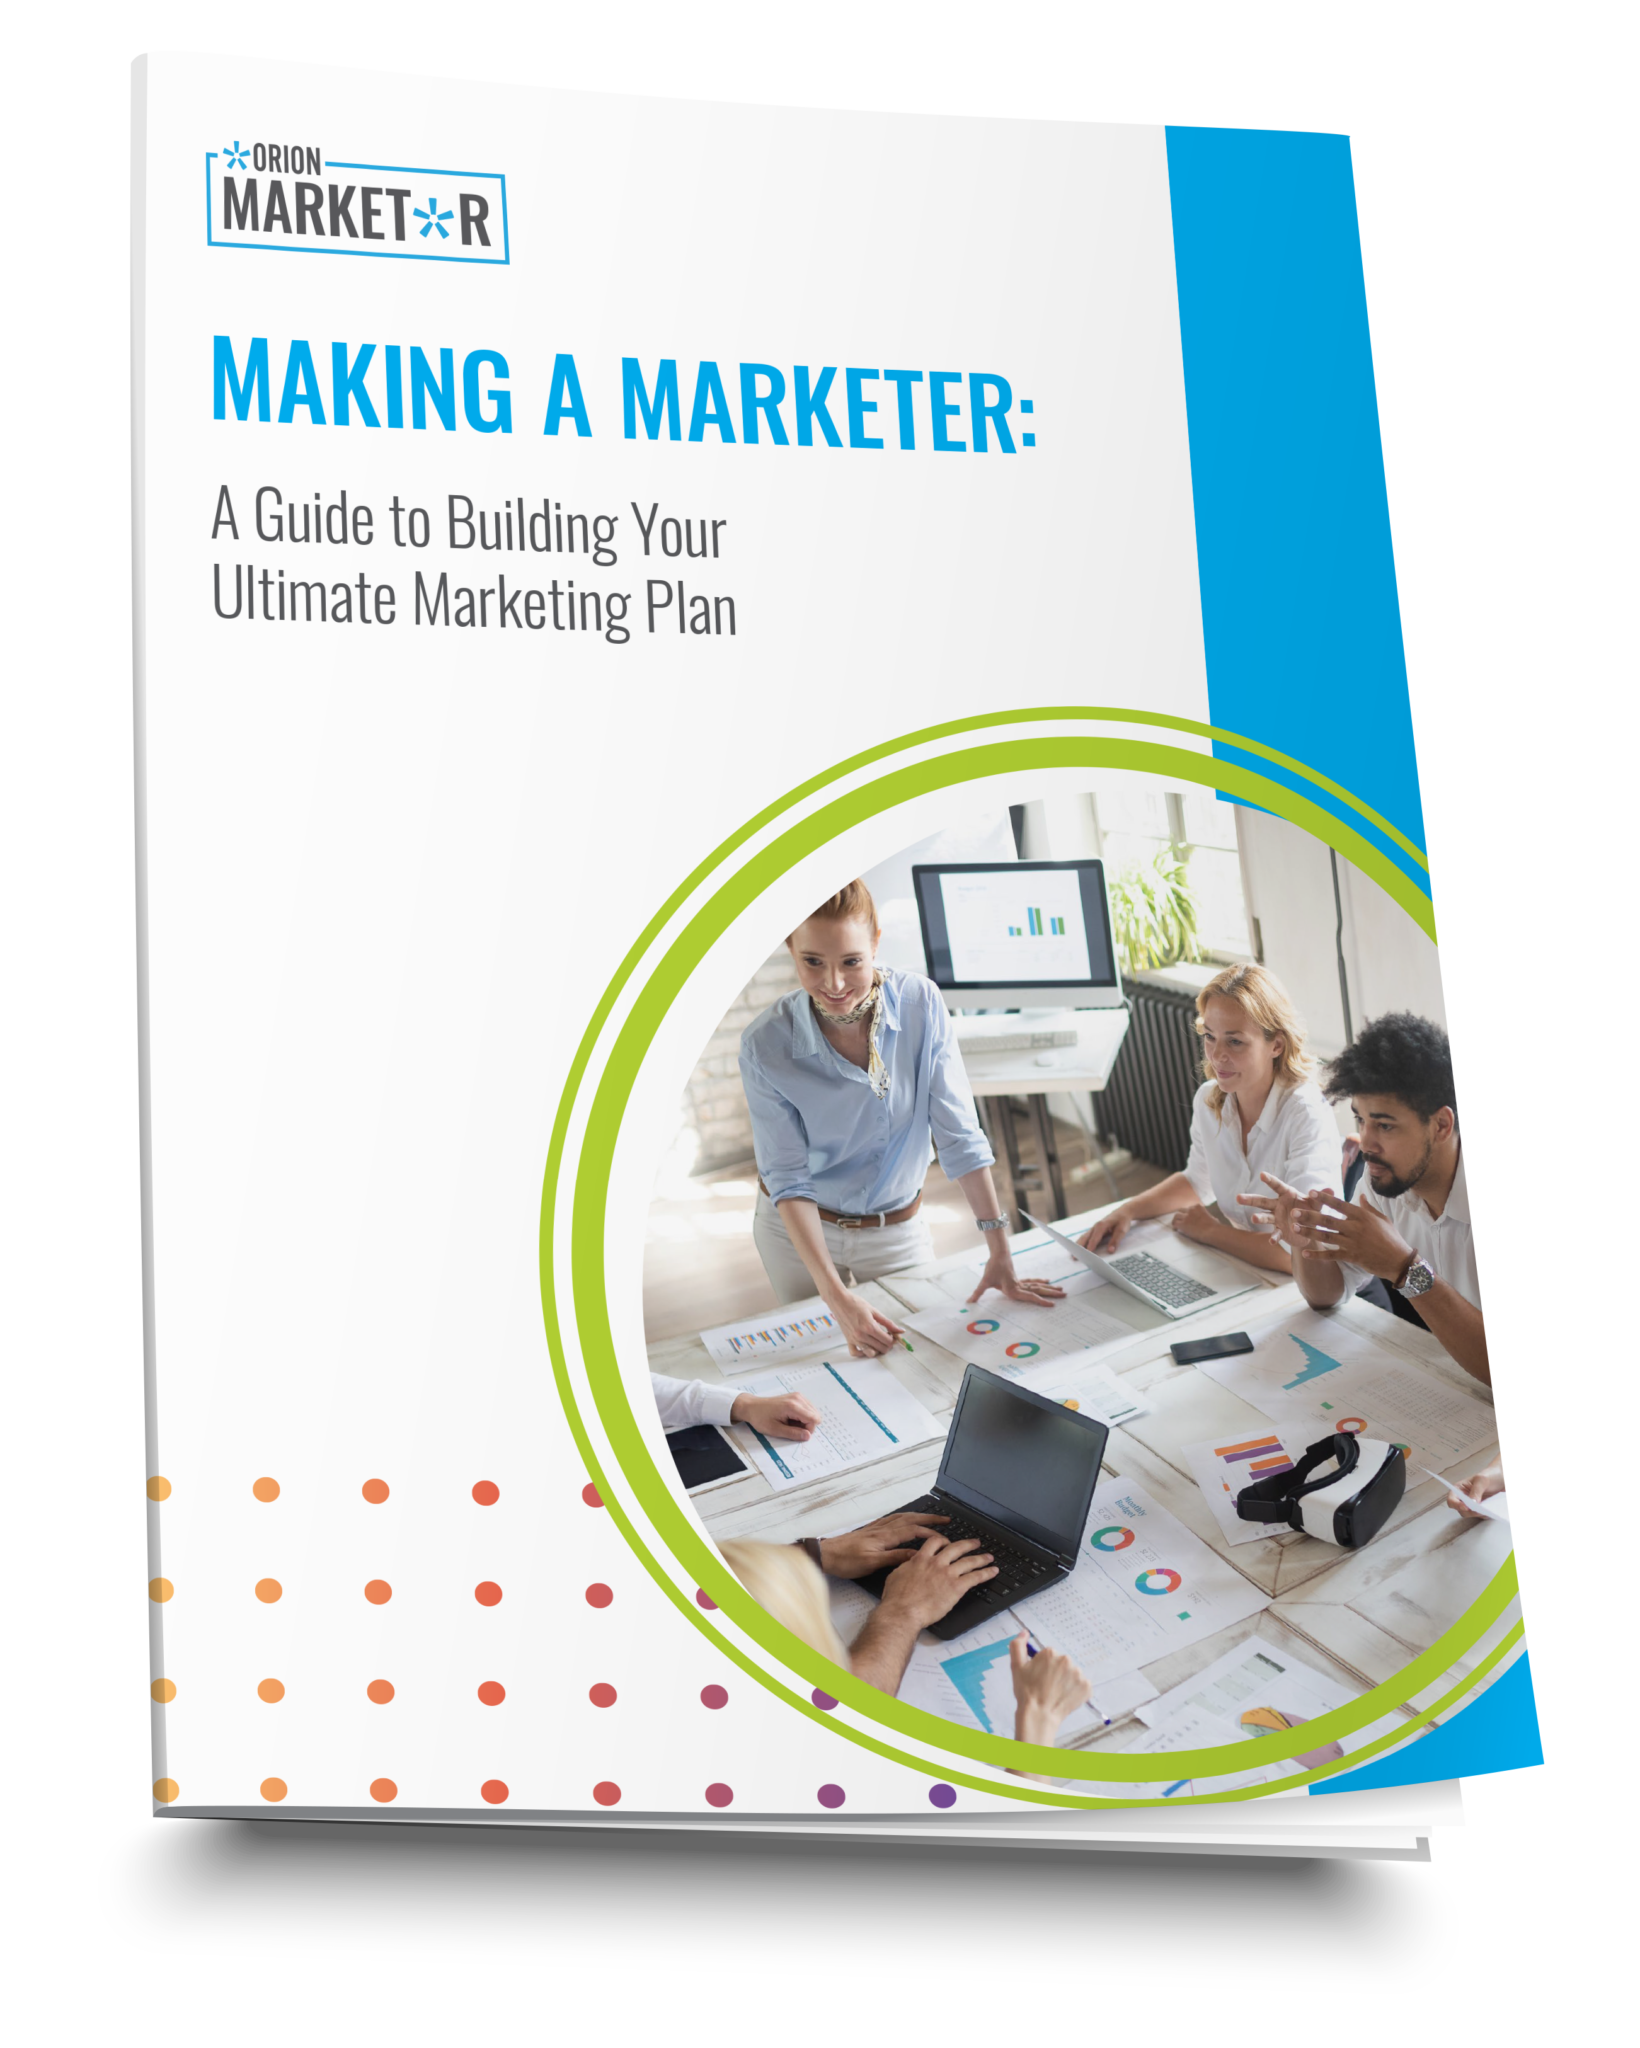 A guide to building your ultimate marketing plan